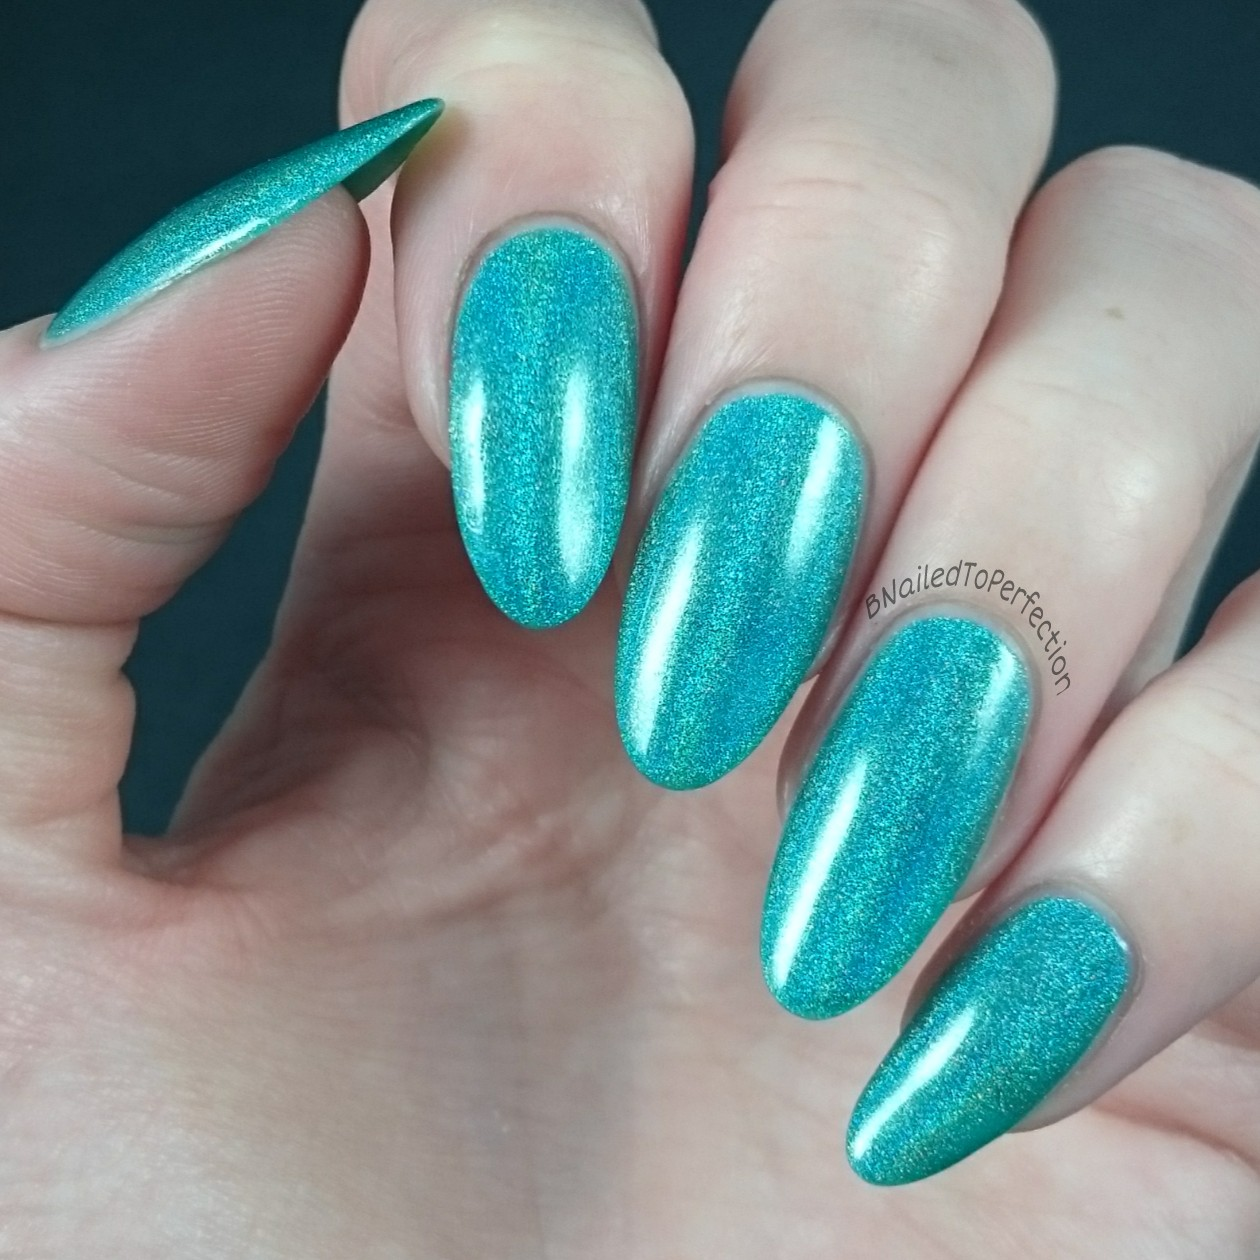 B nailed to perfection celebrate with nyx celestial cosmetics celebrate with nyx is from celestial cosmetics and it was specially made to celebrate their second birthday it is described as a teal linear holo but on prinsesfo Image collections